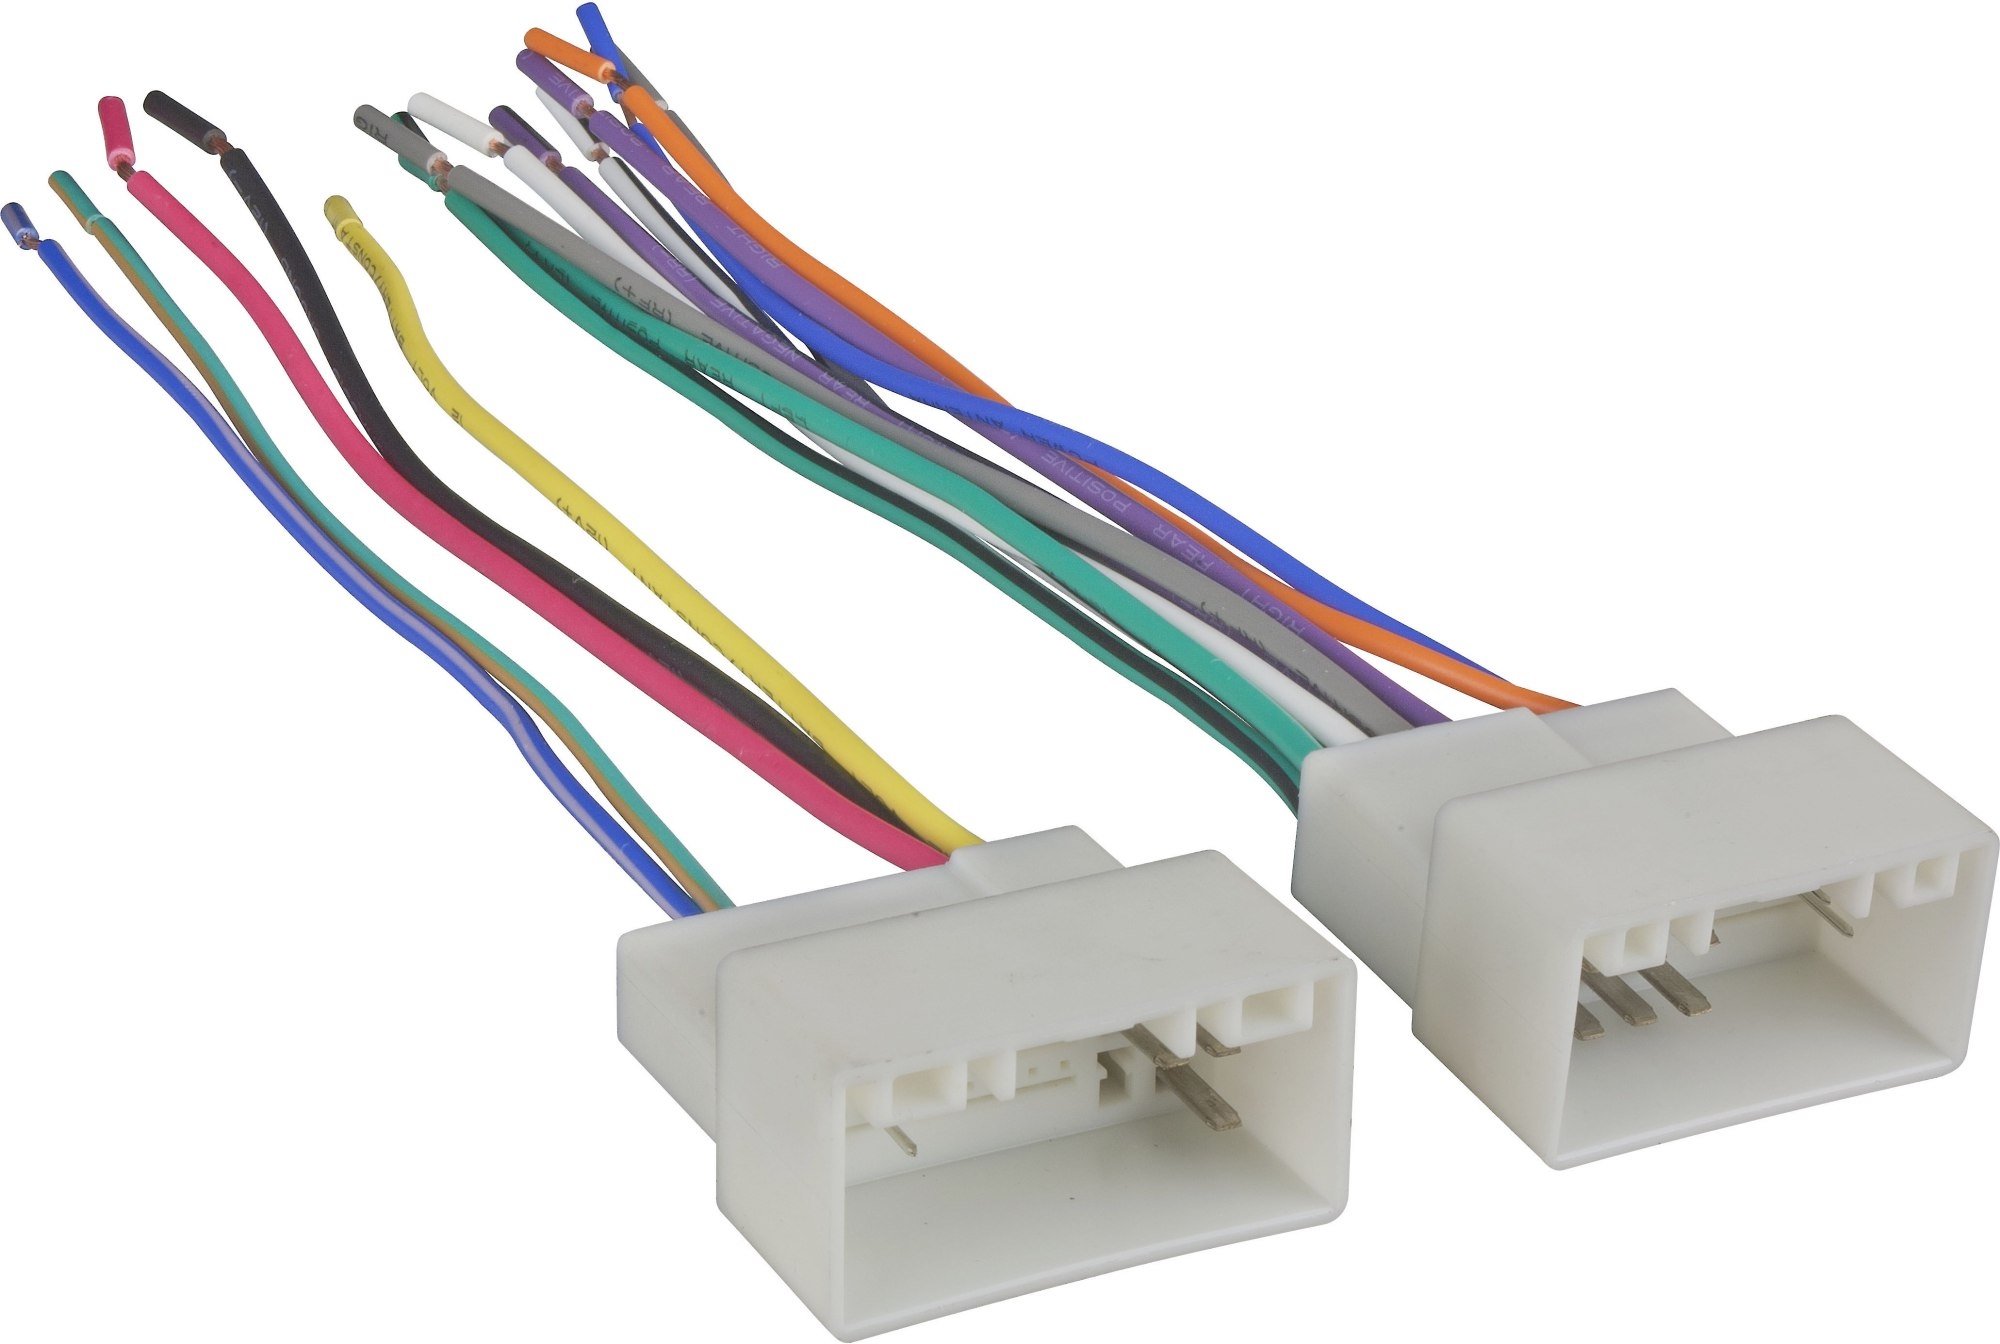 hight resolution of metra 70 7304 receiver wiring harness connect a new car stereo in select 2010 up hyundai and kia vehicles at crutchfield